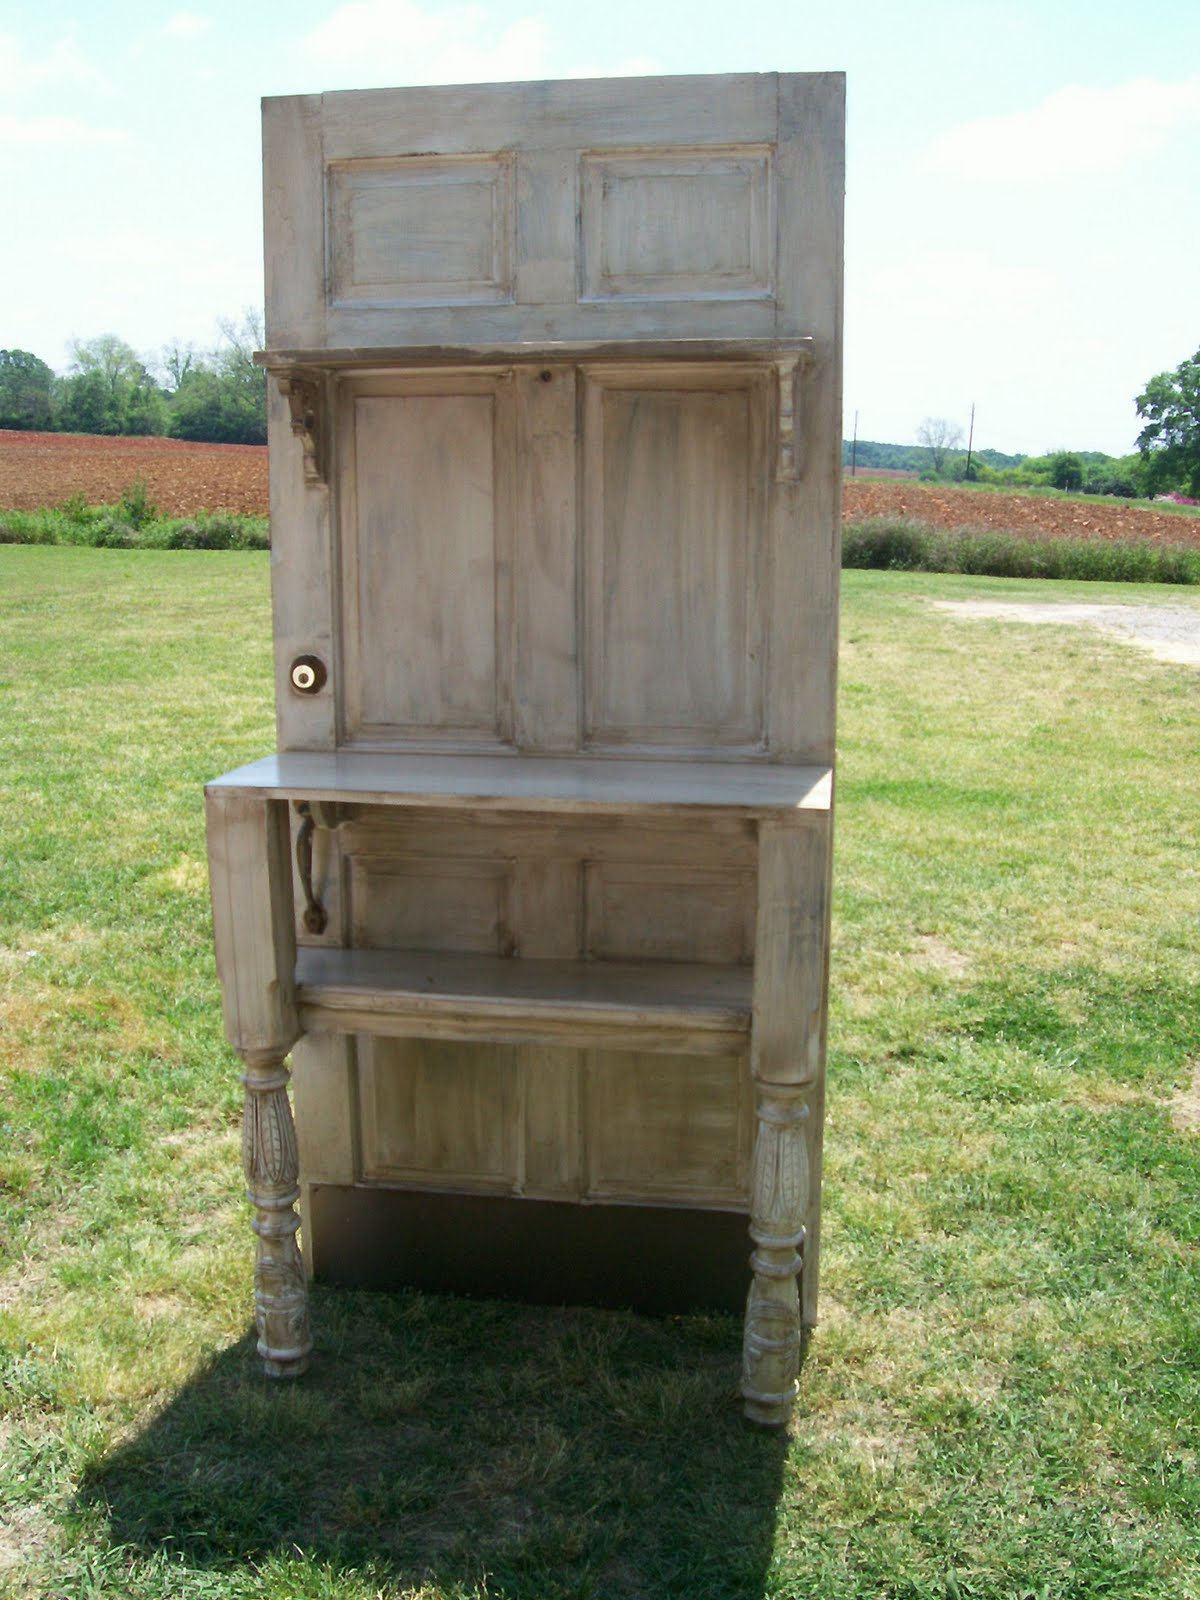 K gilbert designs my new project what do you think - What to do with old doors ...